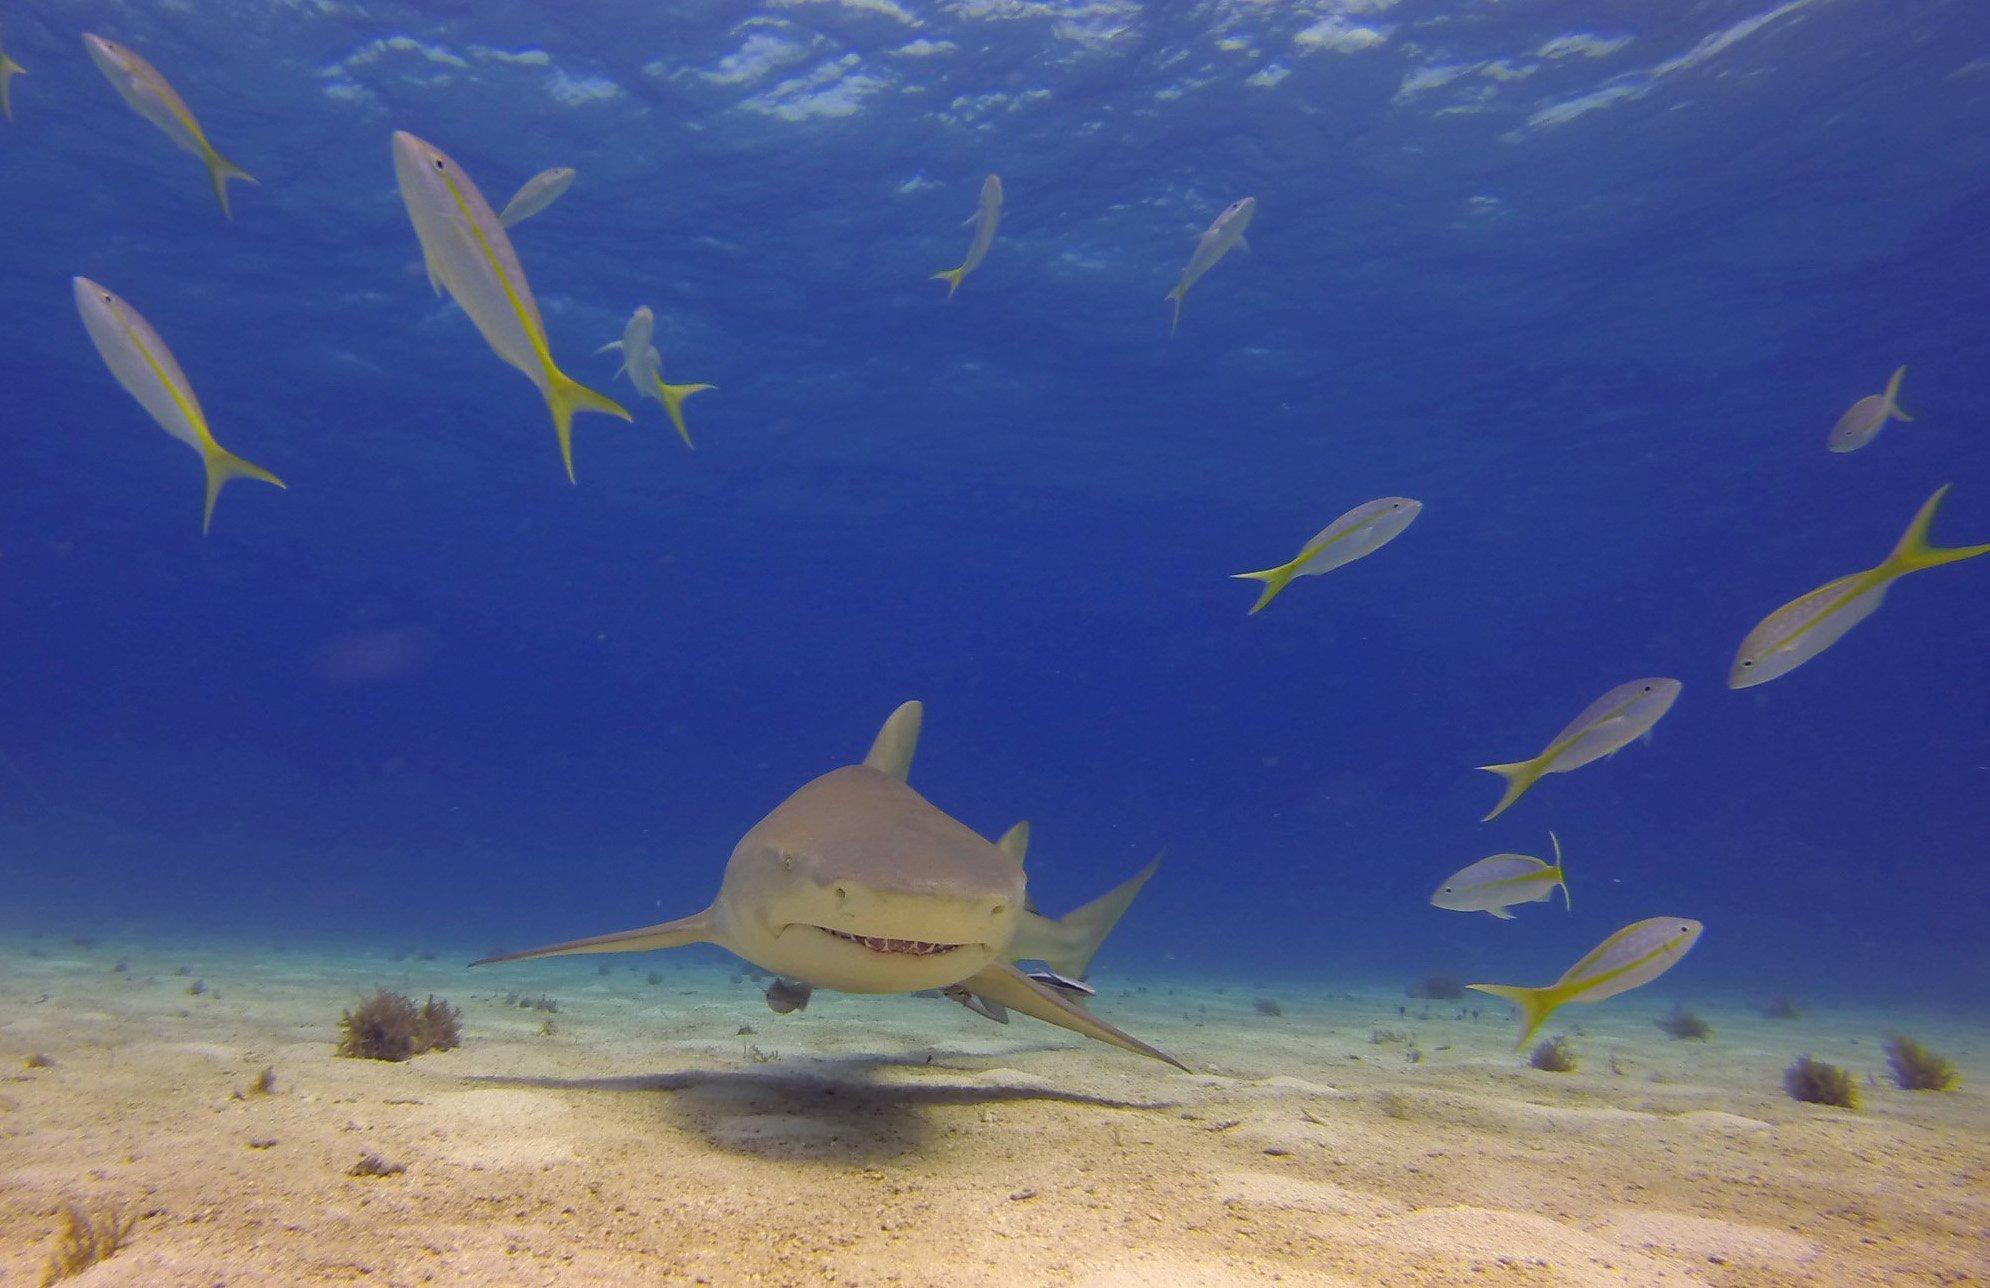 With+a+yellowtail+snapper+dodging+in+front%2C+a+lemon+shark+cruises.+%28Ken+Riddick%2FCharlotte+Observer%2FMCT%29.+Photo+Courtesy+of+MCT